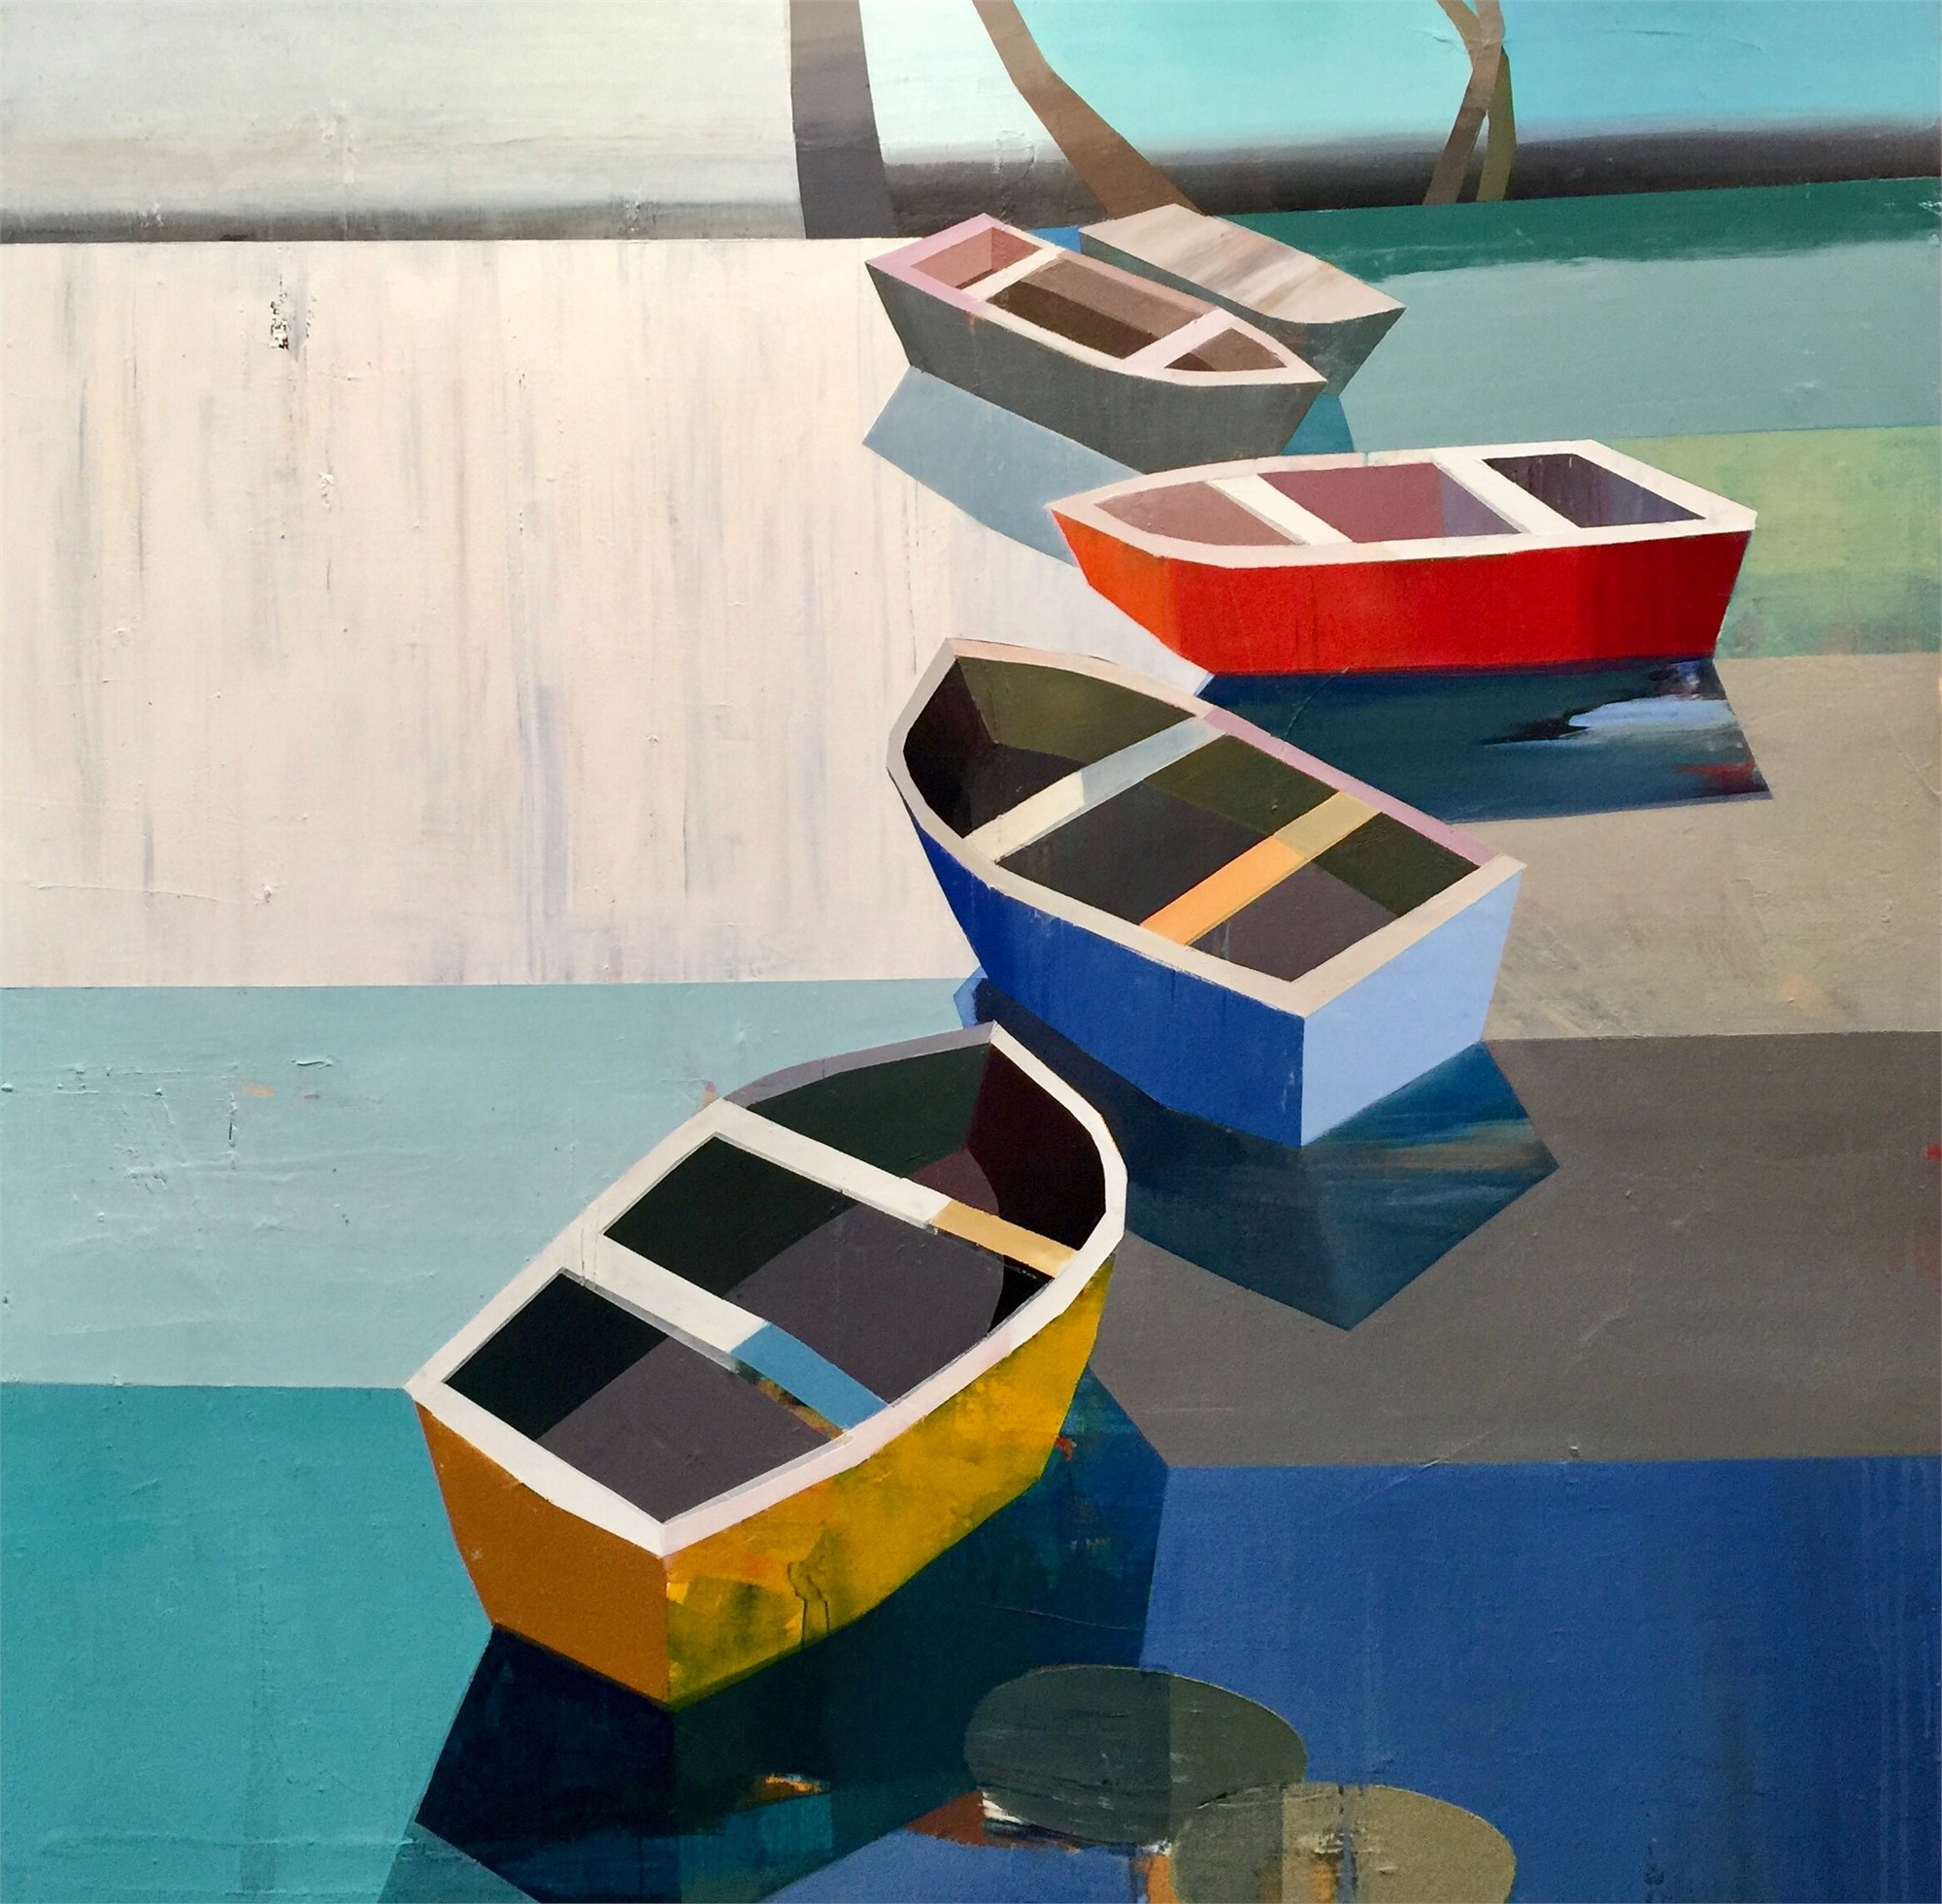 Colorful Boats in the Bay by Siddharth Parasnis